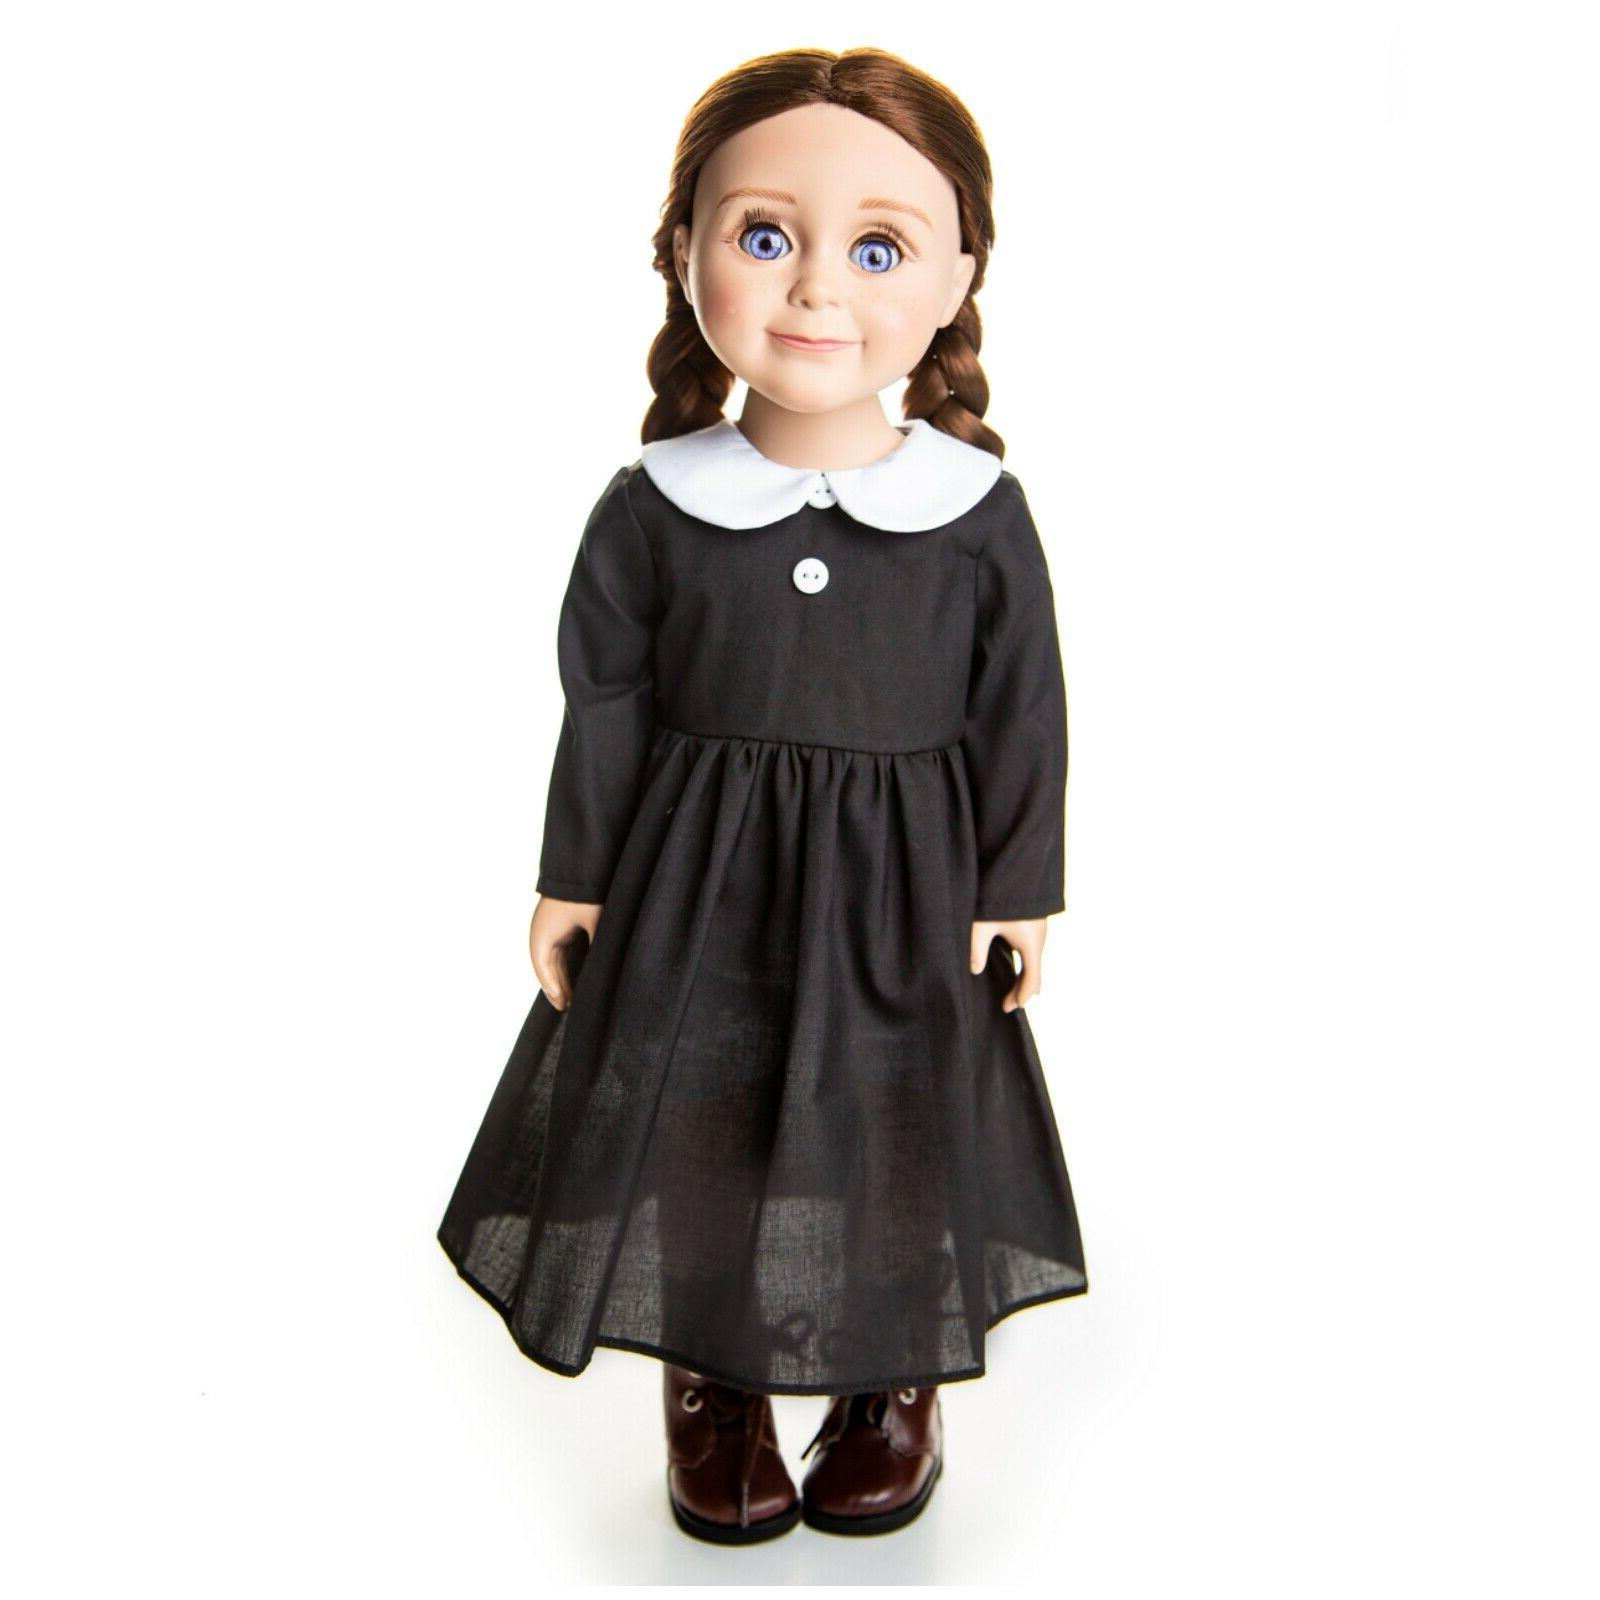 18 Inch Clothes 4 MAID American Girl